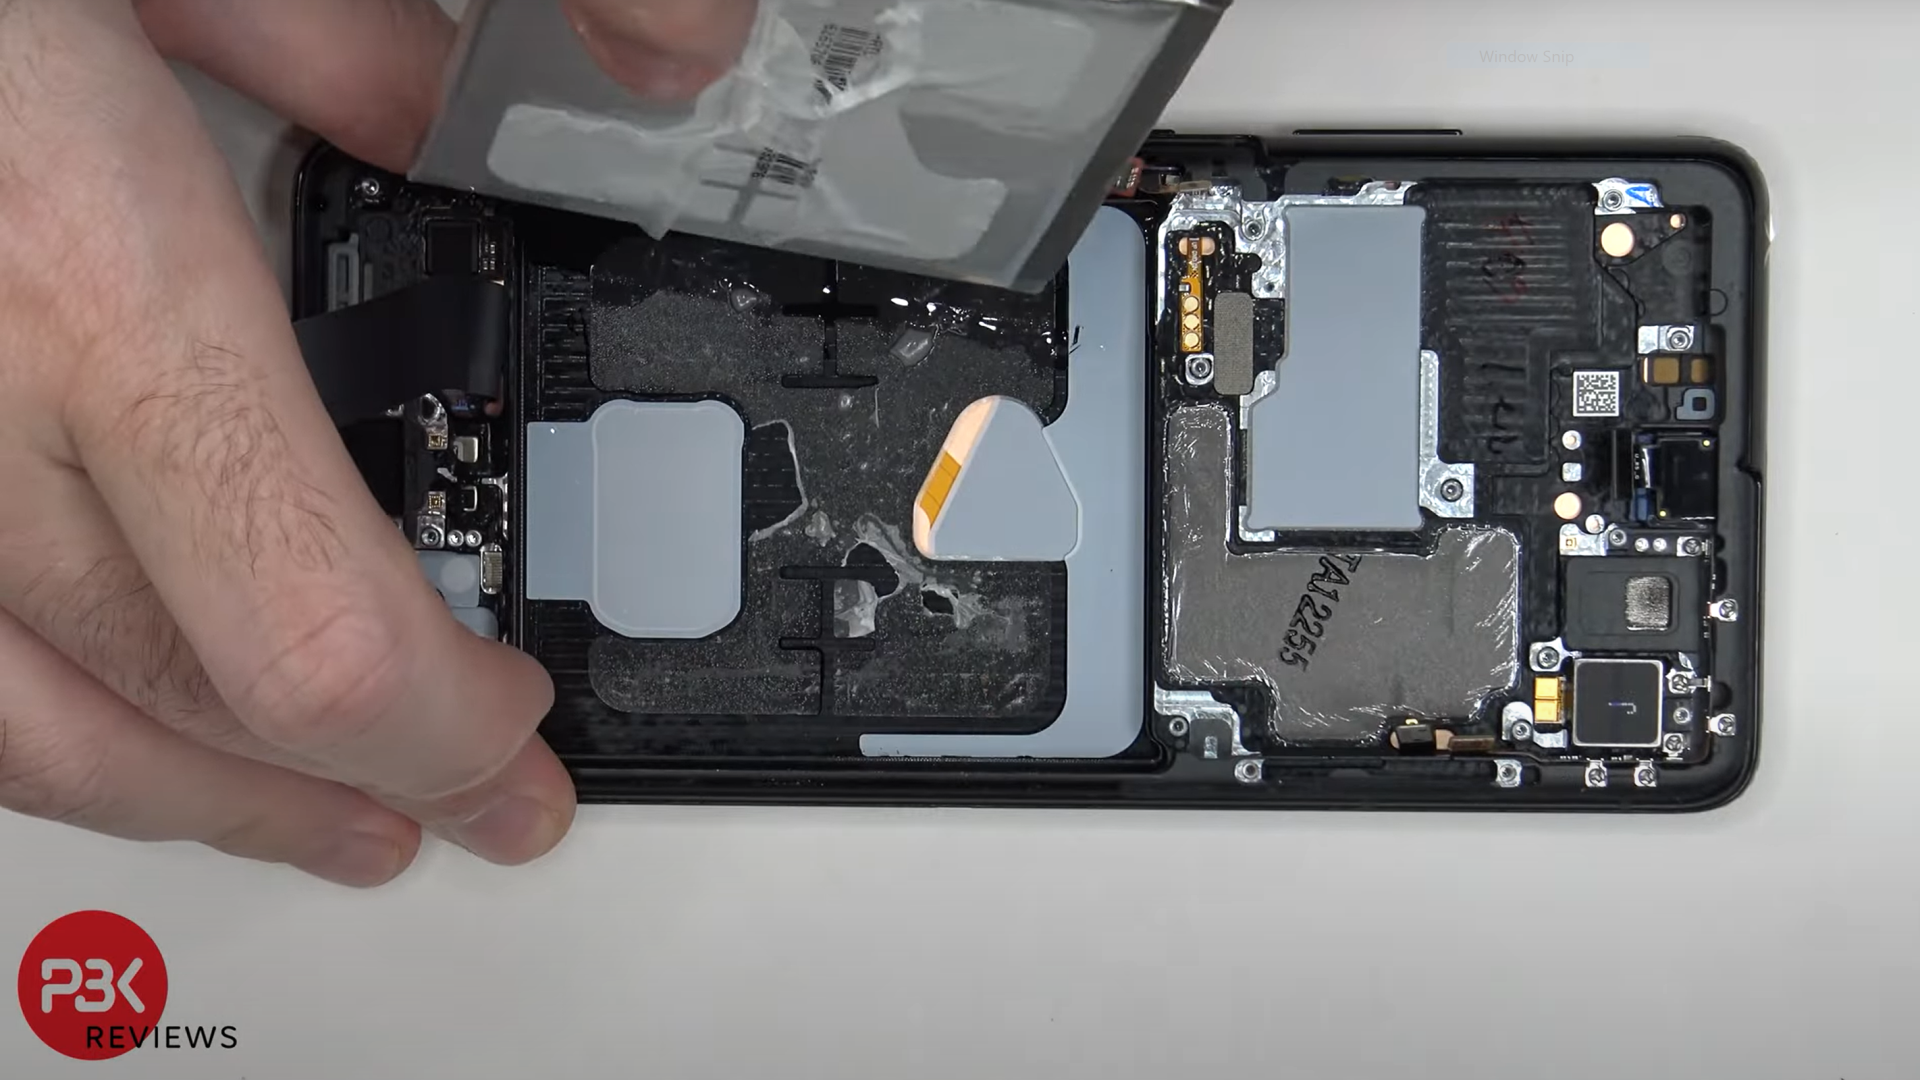 Samsung Galaxy S21 Ultra teardown suggests bigger is not always better for repairability